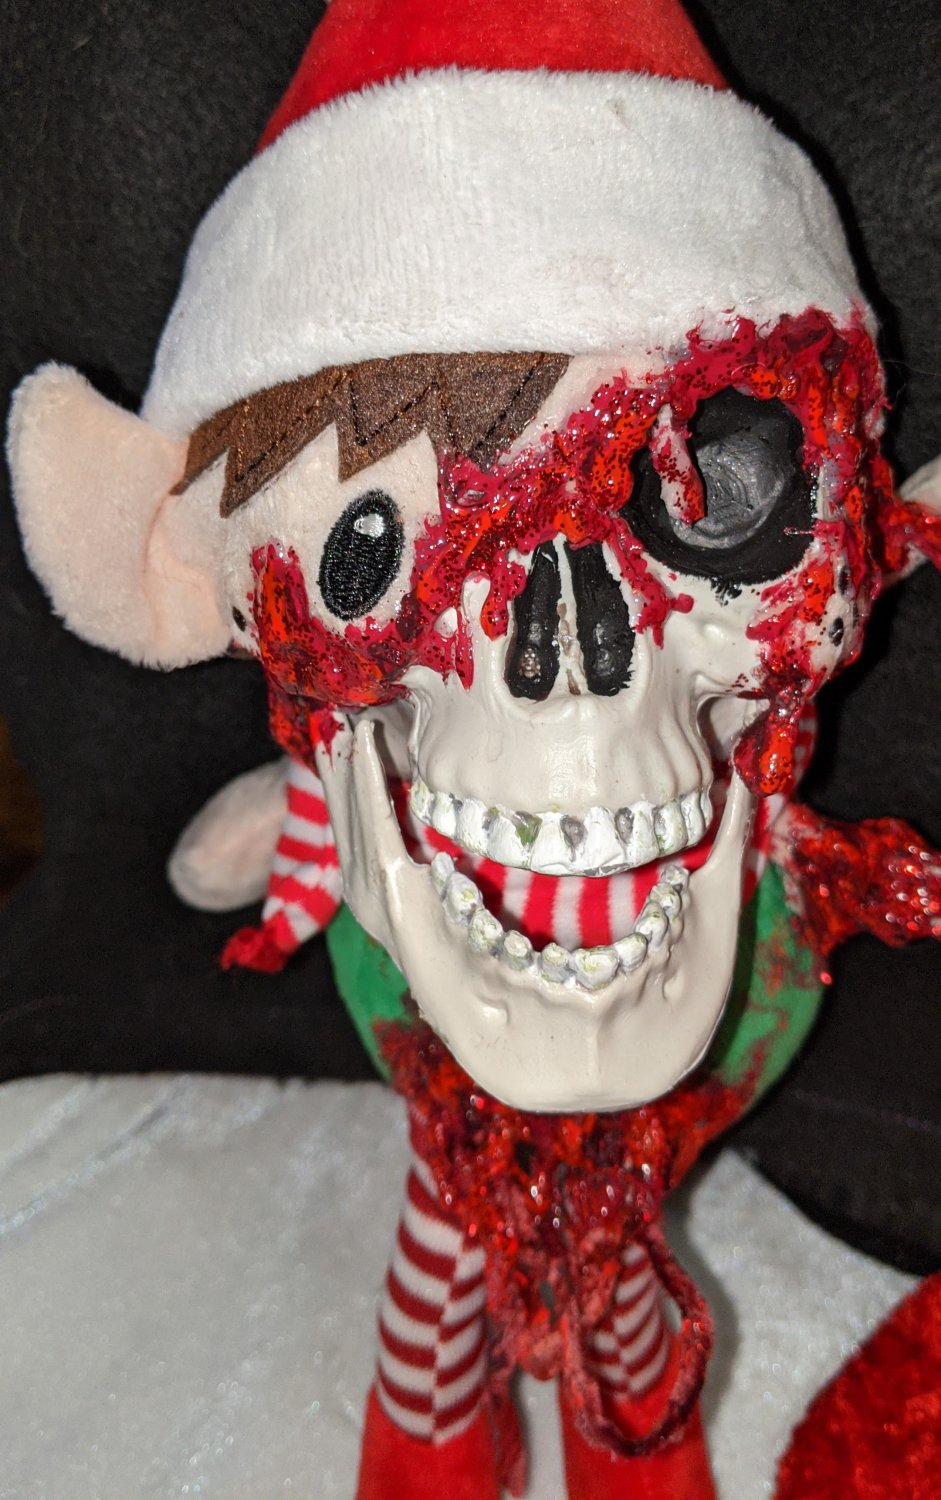 HELLF - ABoMiNaTioN #8 (Elf from Hell plush) (ONE OF A KIND ARTWORK!)